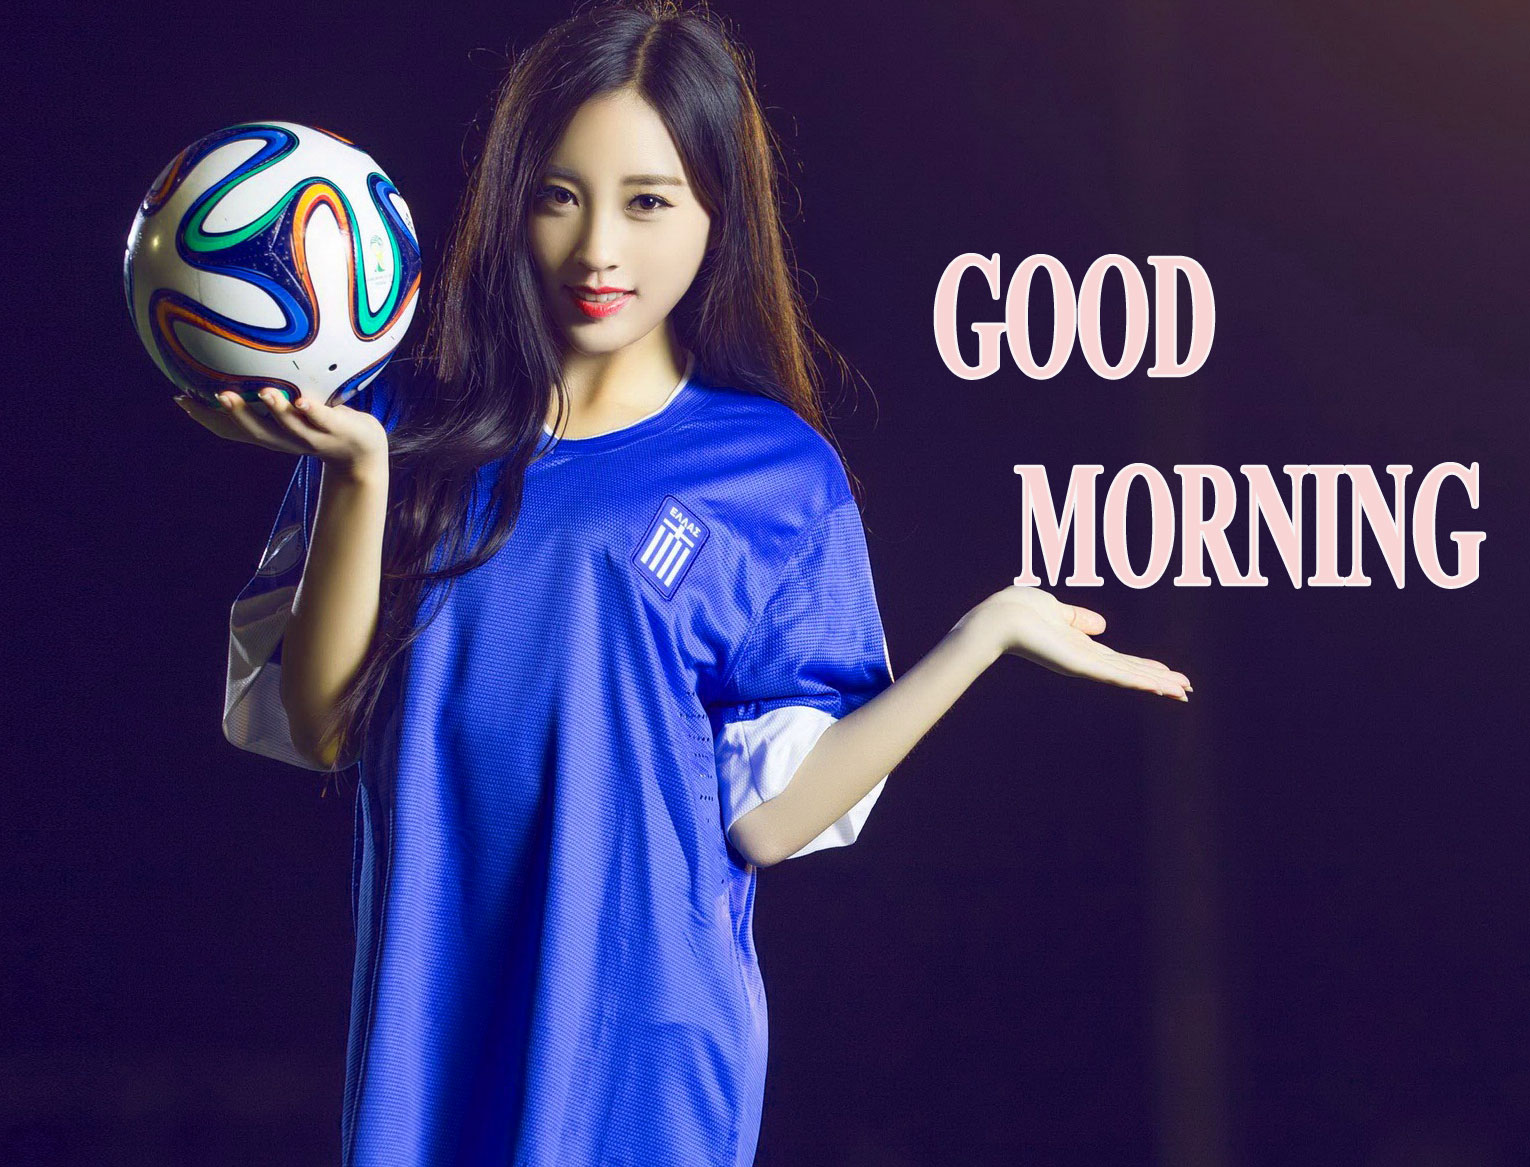 BEAUTIFUL LATEST AMAZING ALL GOOD MORNING IMAGES PHOTO WALLPAPER PICS DOWNLOAD